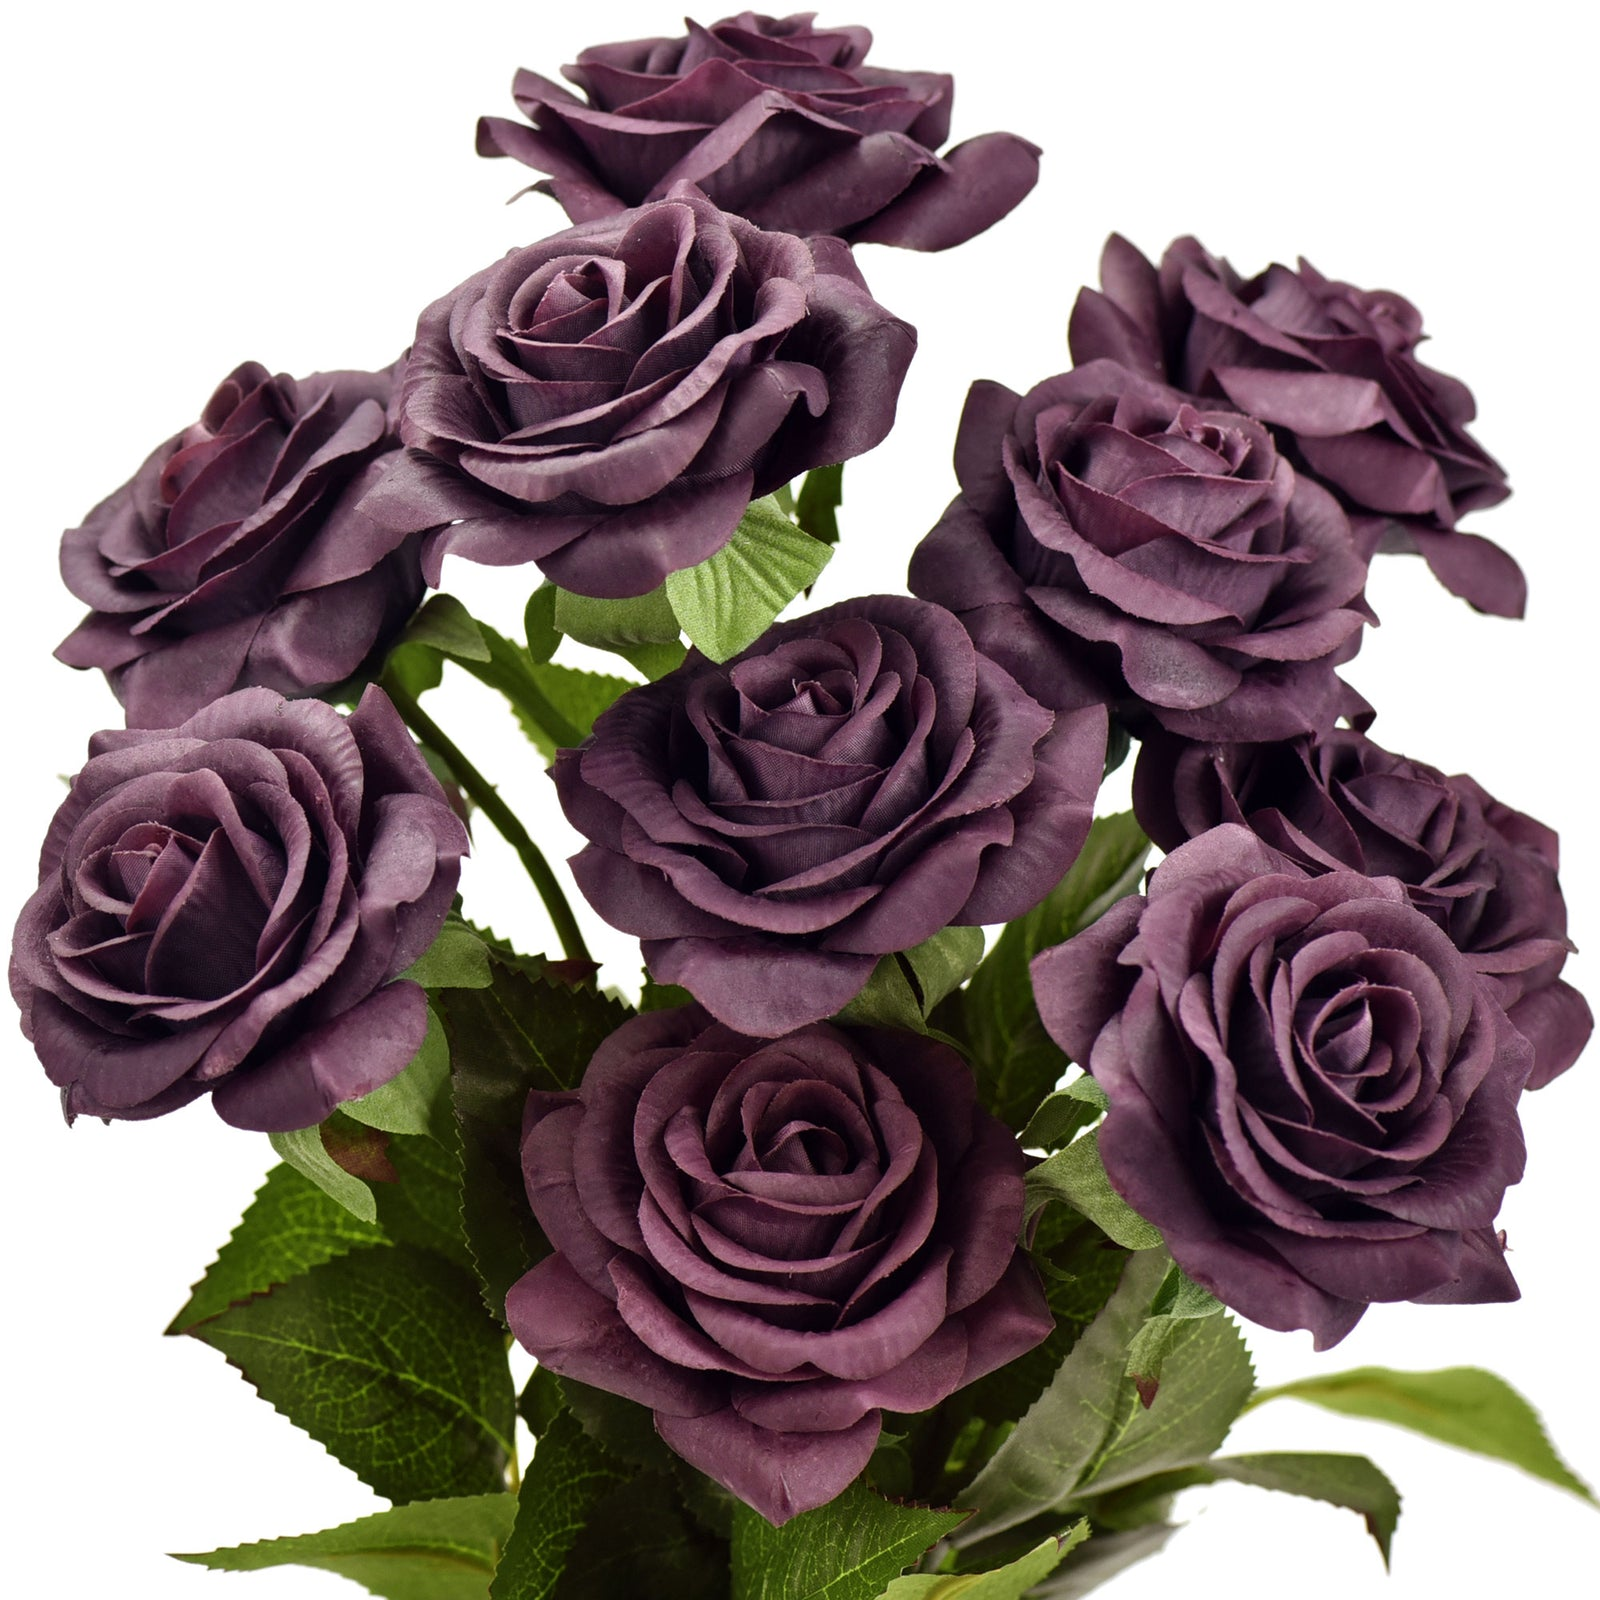 Real Touch 10 Stems Burgundy Silk Artificial Roses Flowers 'Petals Feel and Look like Fresh Roses'